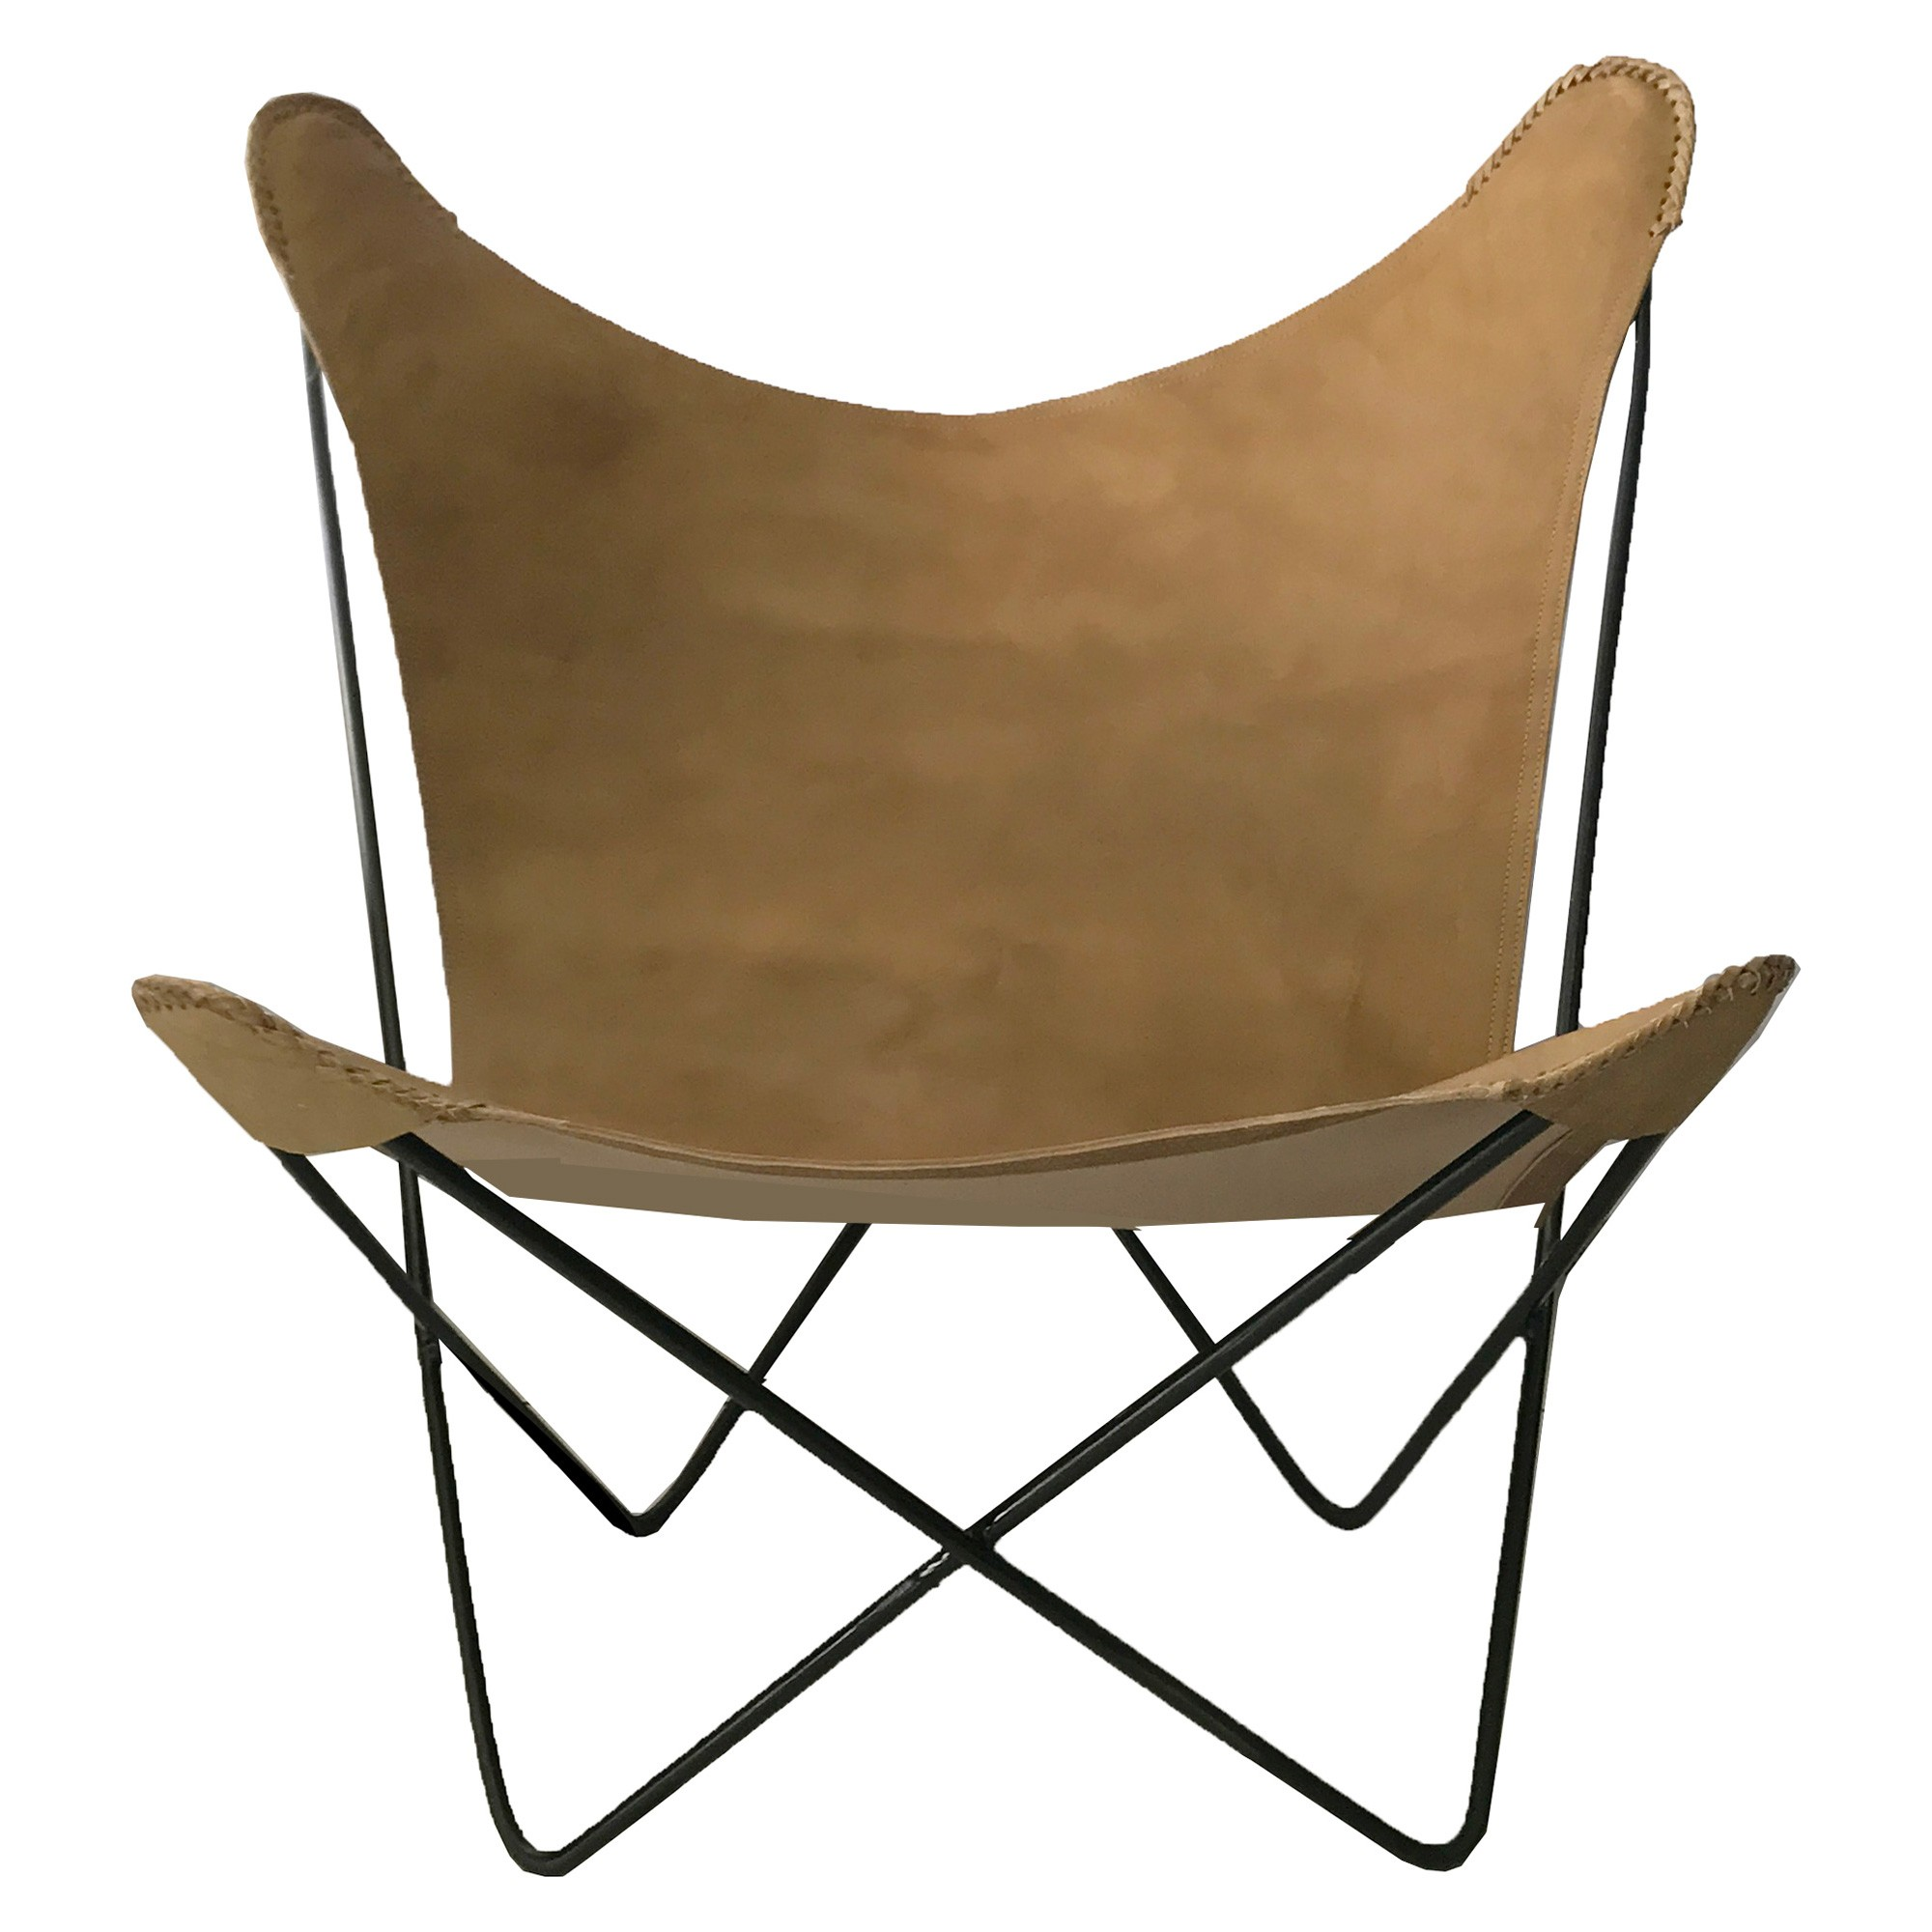 Hermann Leather & Steel Butterfly Chair, Caramel